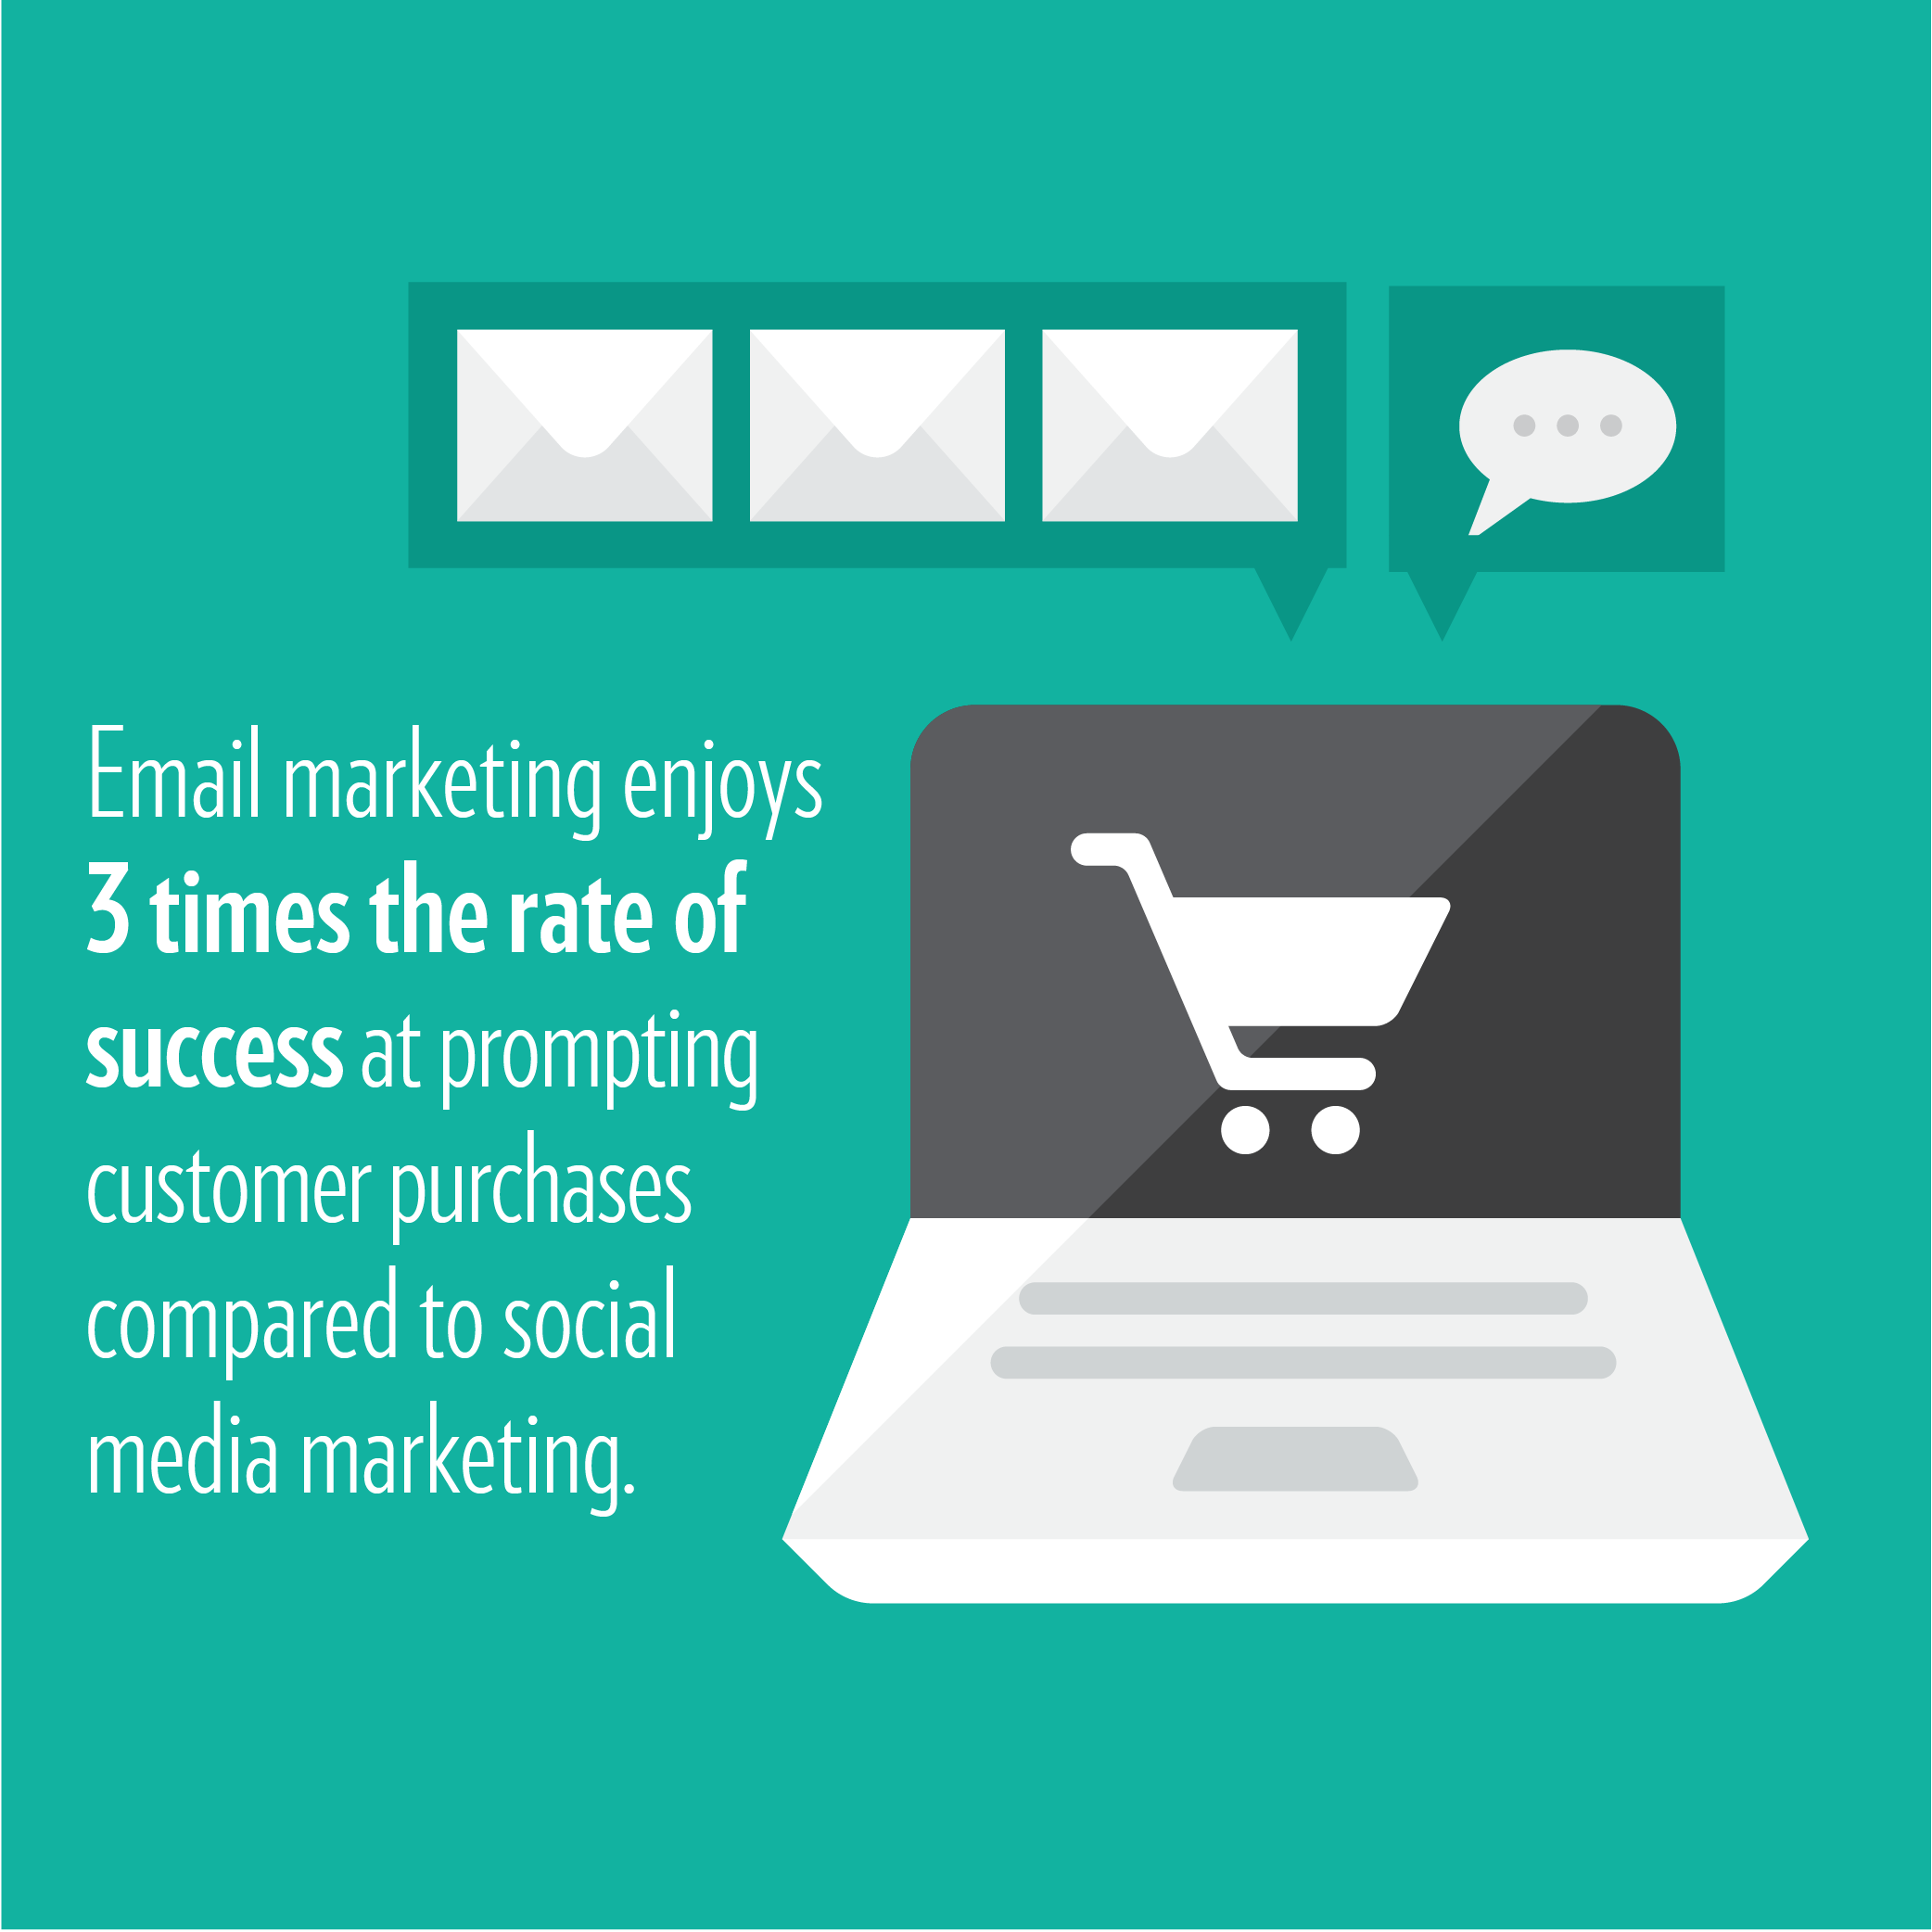 Illustration showing the benefit of email marketing over social media.